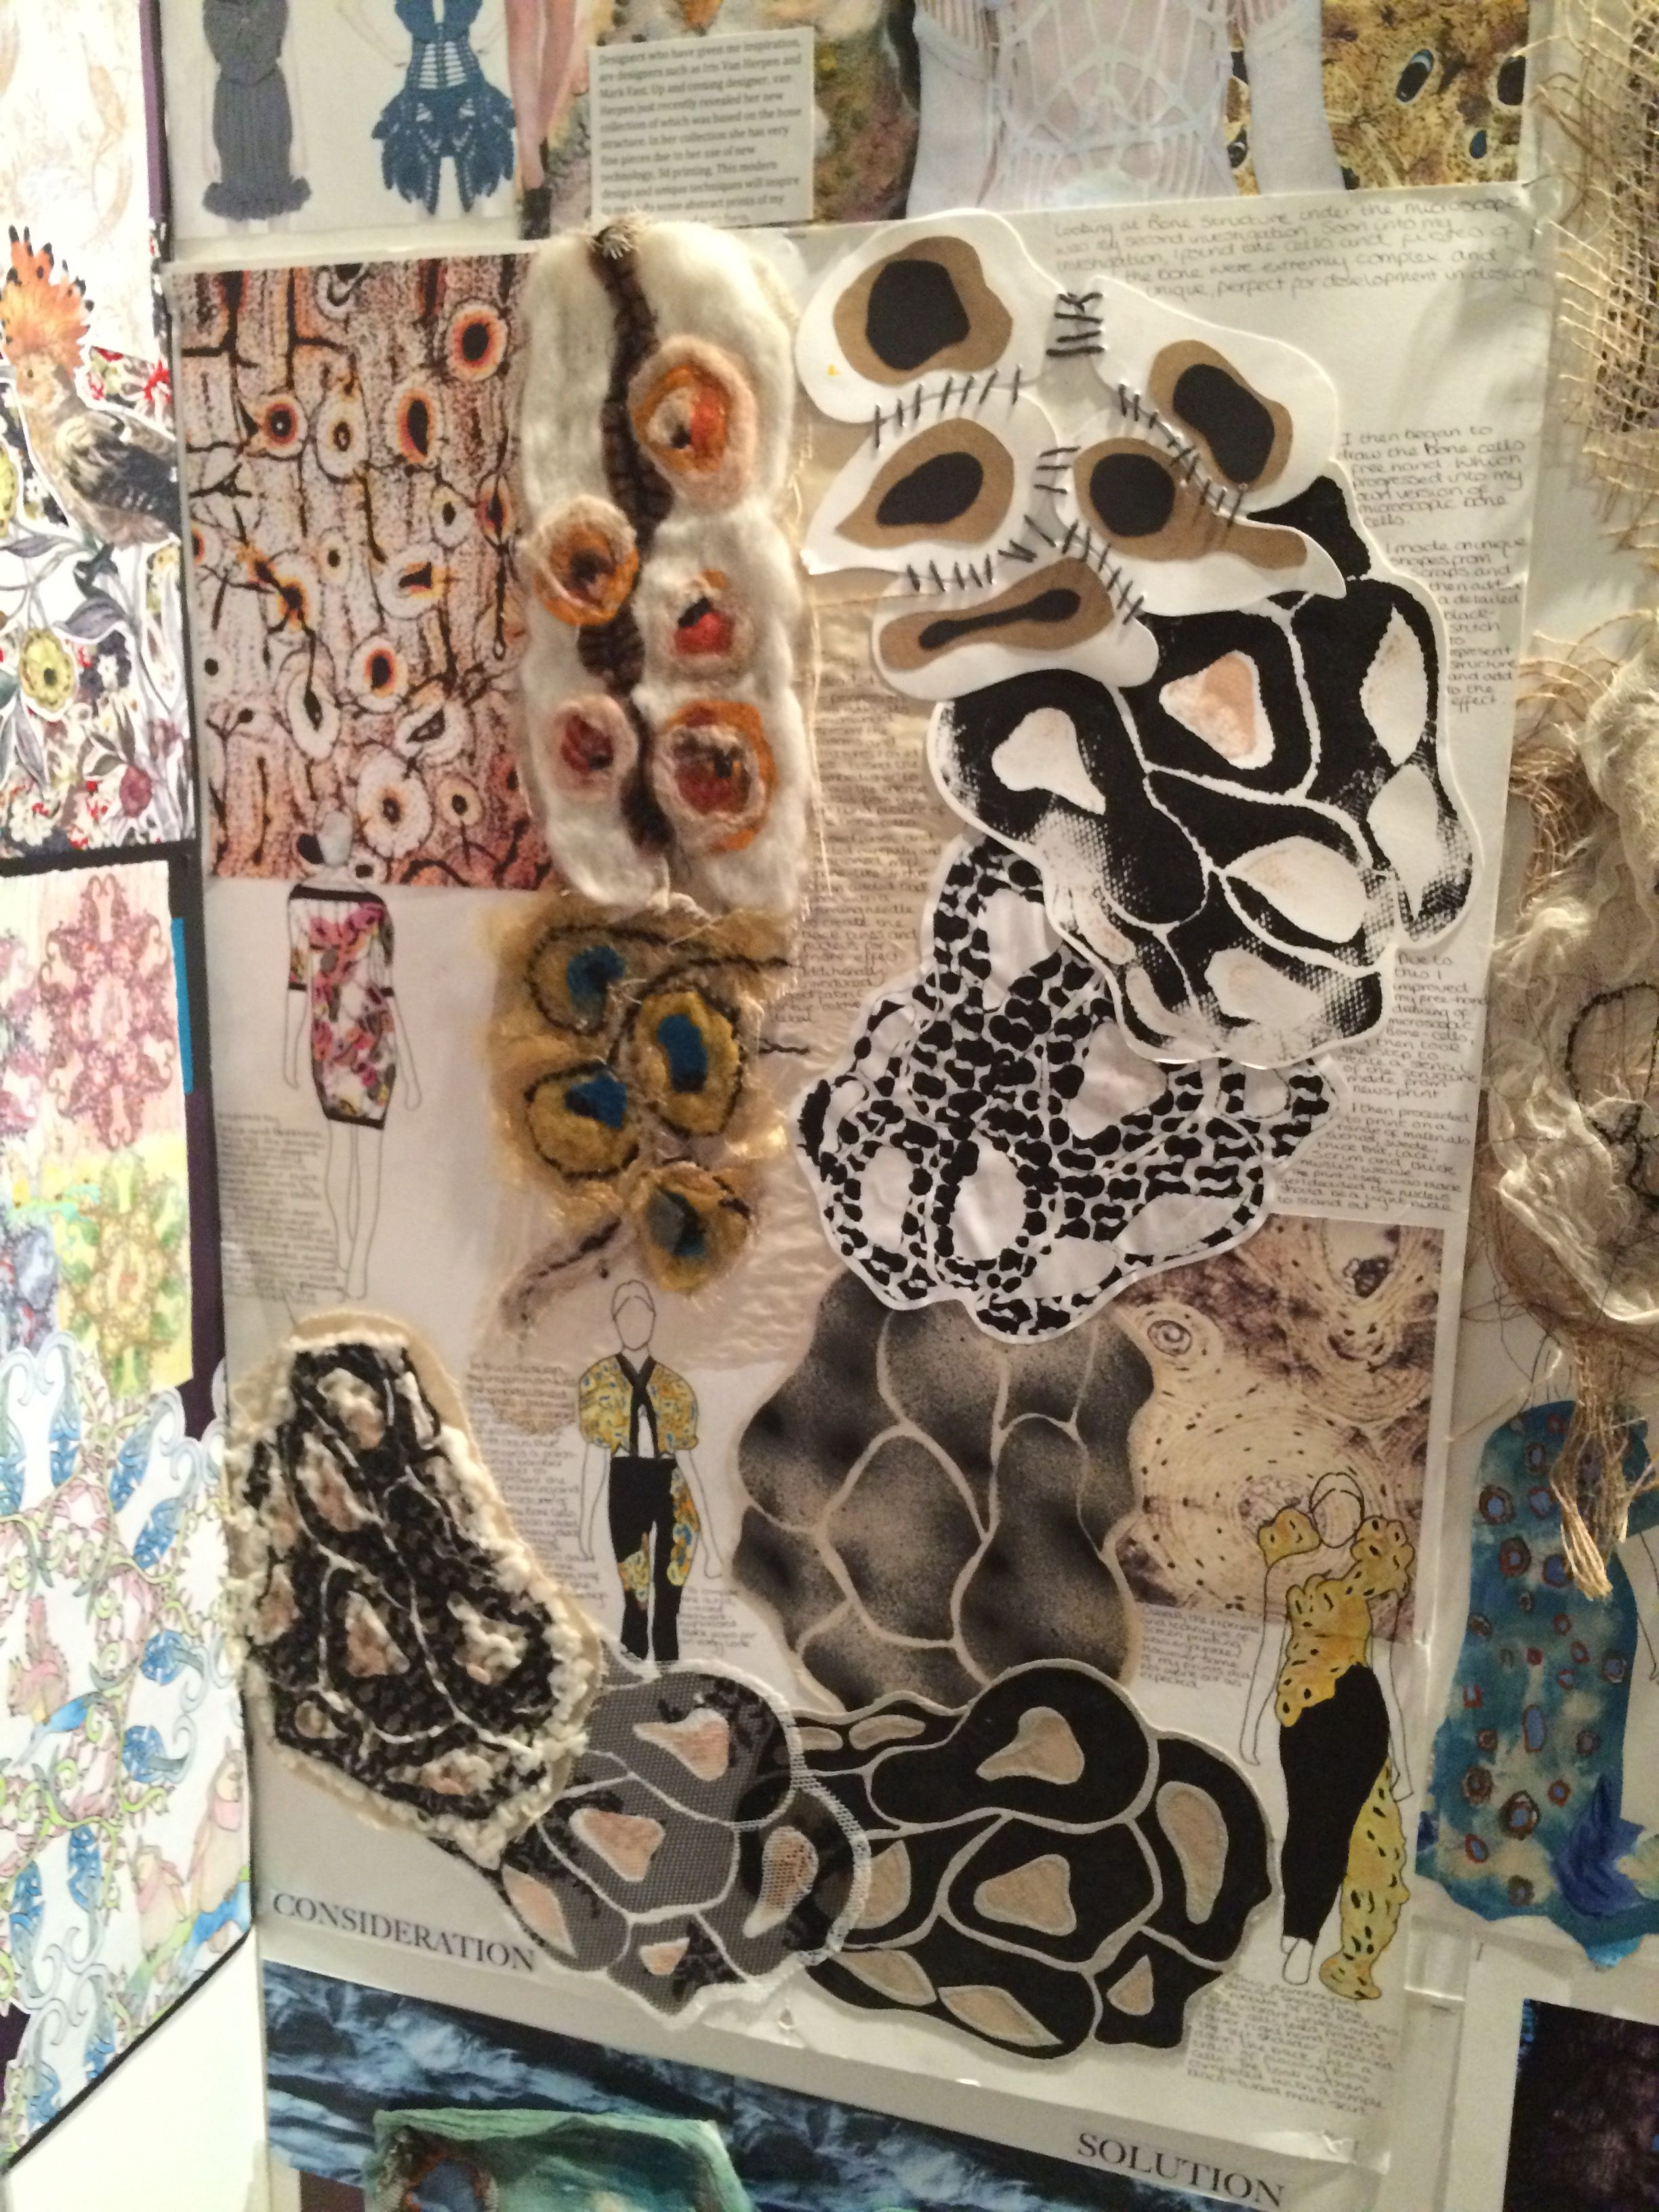 Pin by Катрин on Арт бук | A level textiles sketchbook, Textiles